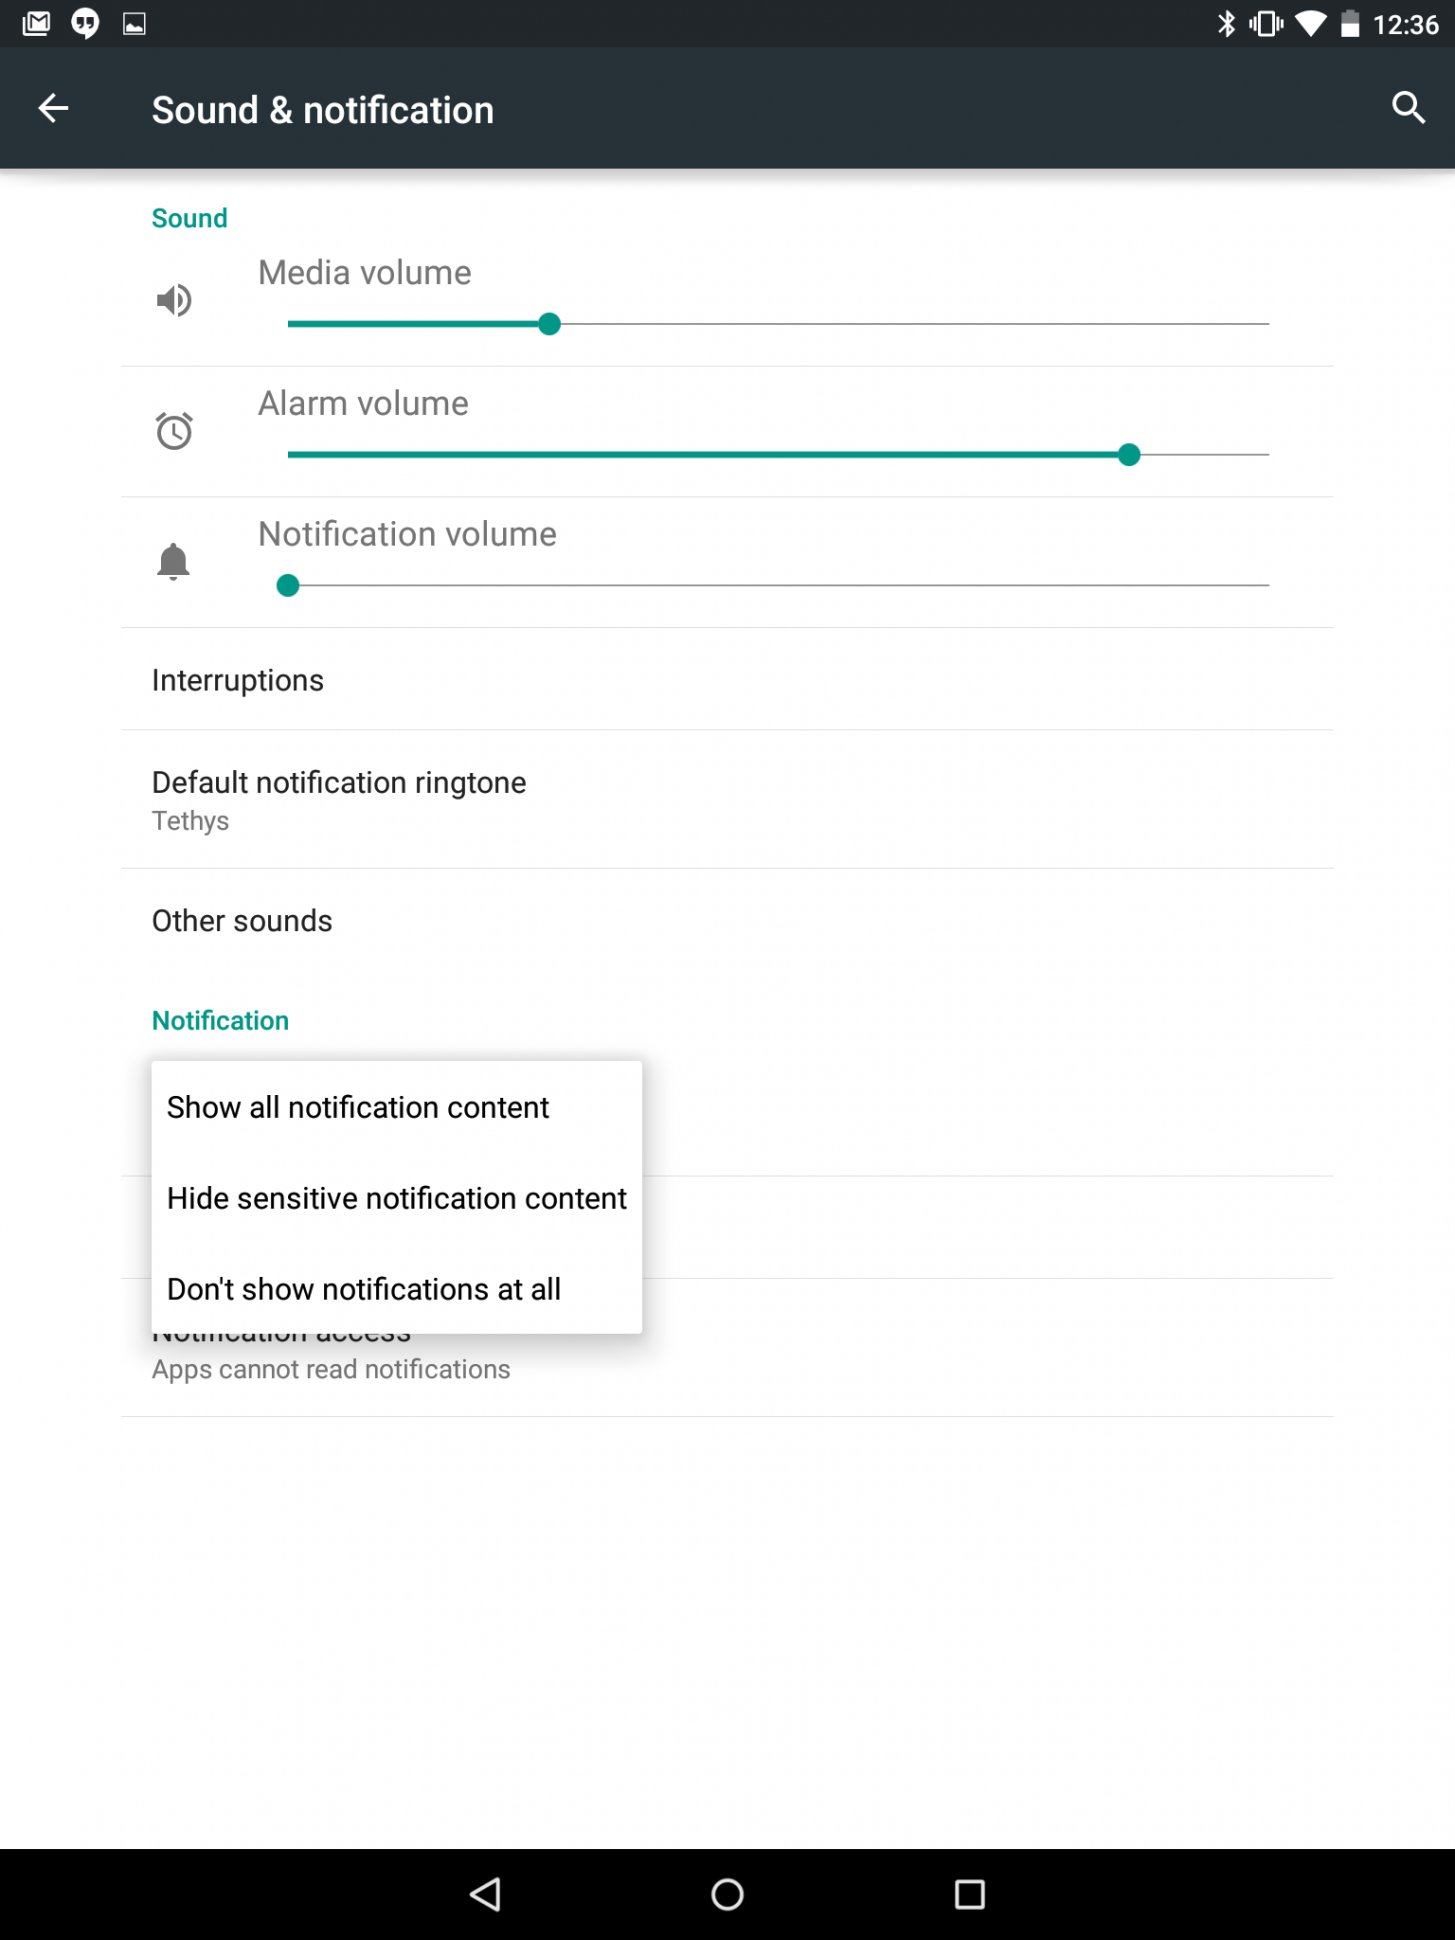 How To Change Sound Settings - Android Lollipop